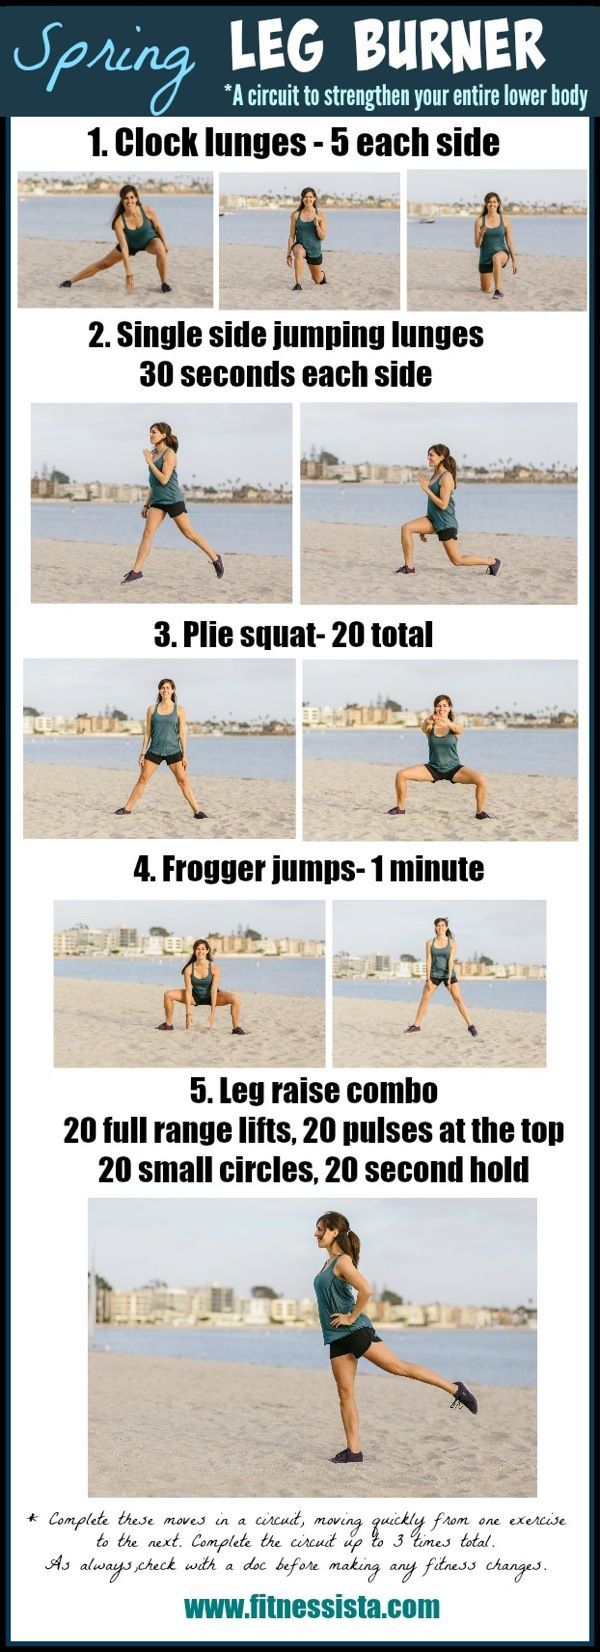 Spring leg burner. A killer leg workout you can do anywhere without equipment! www.fitnessista.com